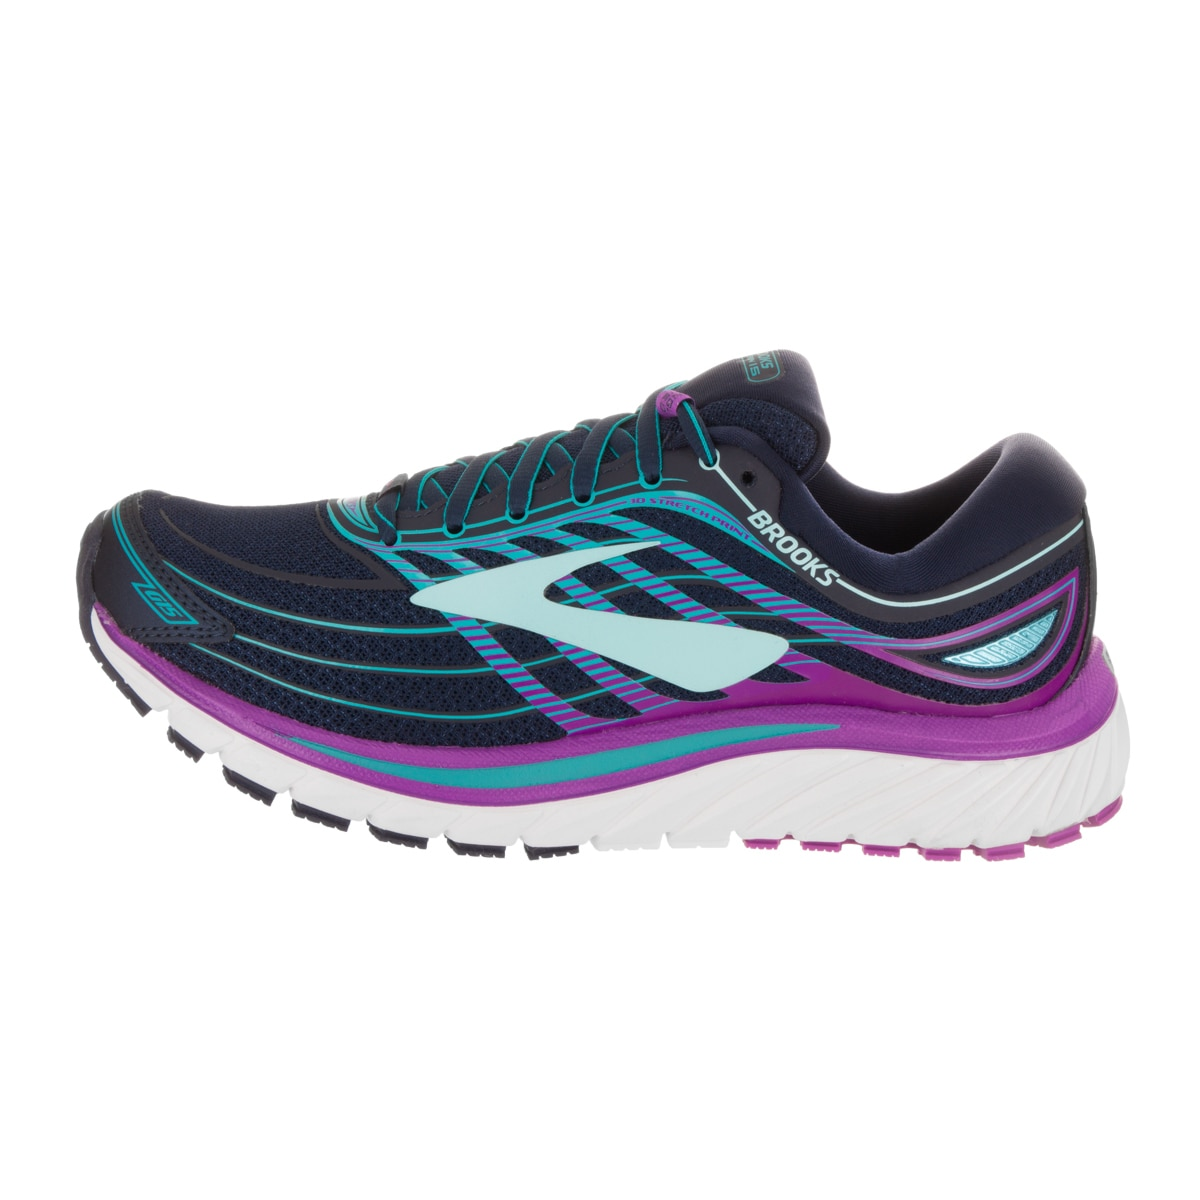 5dc760828d71c Shop Brooks Women s Glycerin 15 Running Shoe - Free Shipping Today -  Overstock - 16431905